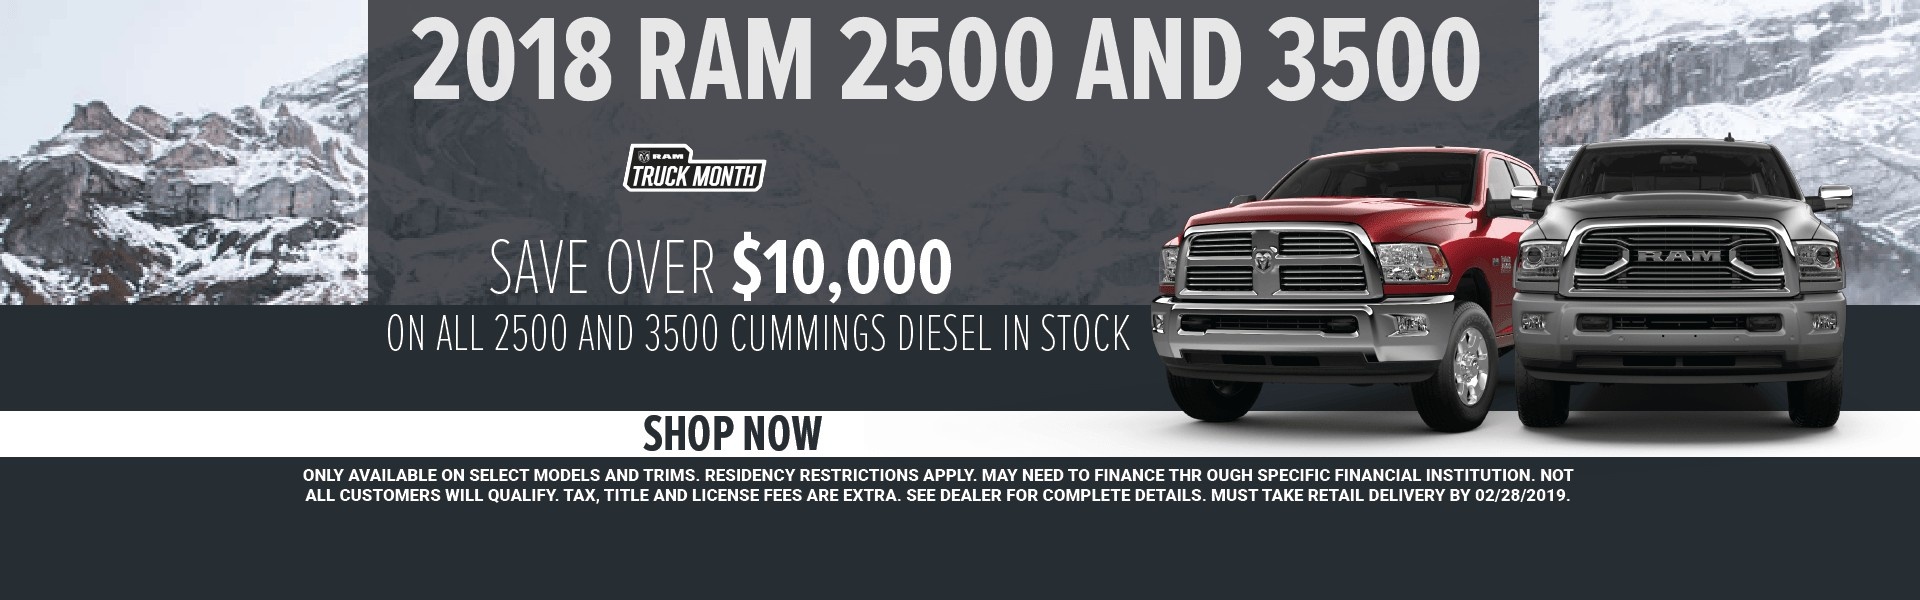 Ram 2500 and 3500